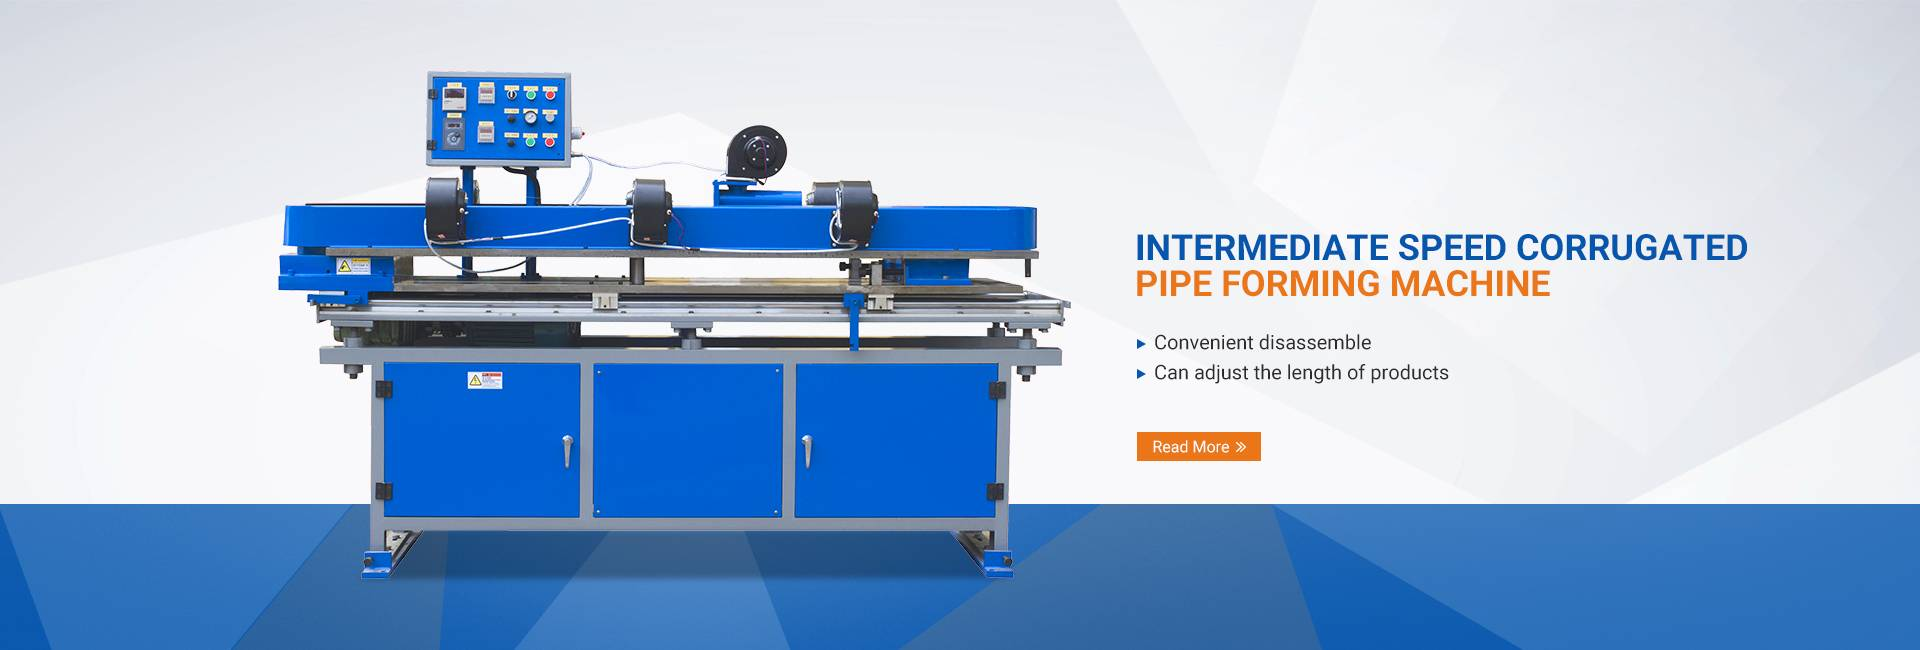 Intermediate speed corrugated pipe forming machine